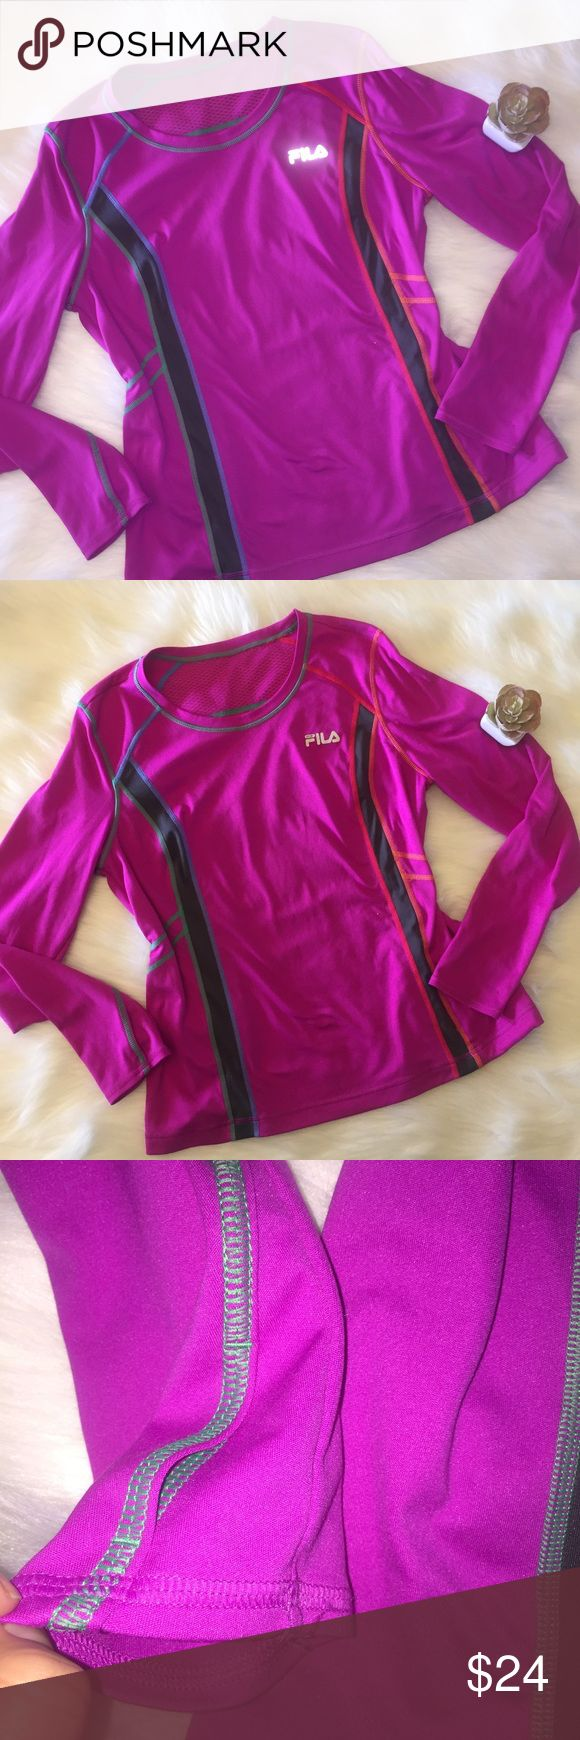 Fila Sport Performance Long Sleeve Workout Shirt Seriously Great material!! There are thumb holes ! The stiches are ombre and the shirt is a deep pink / magenta color. Fila Tops